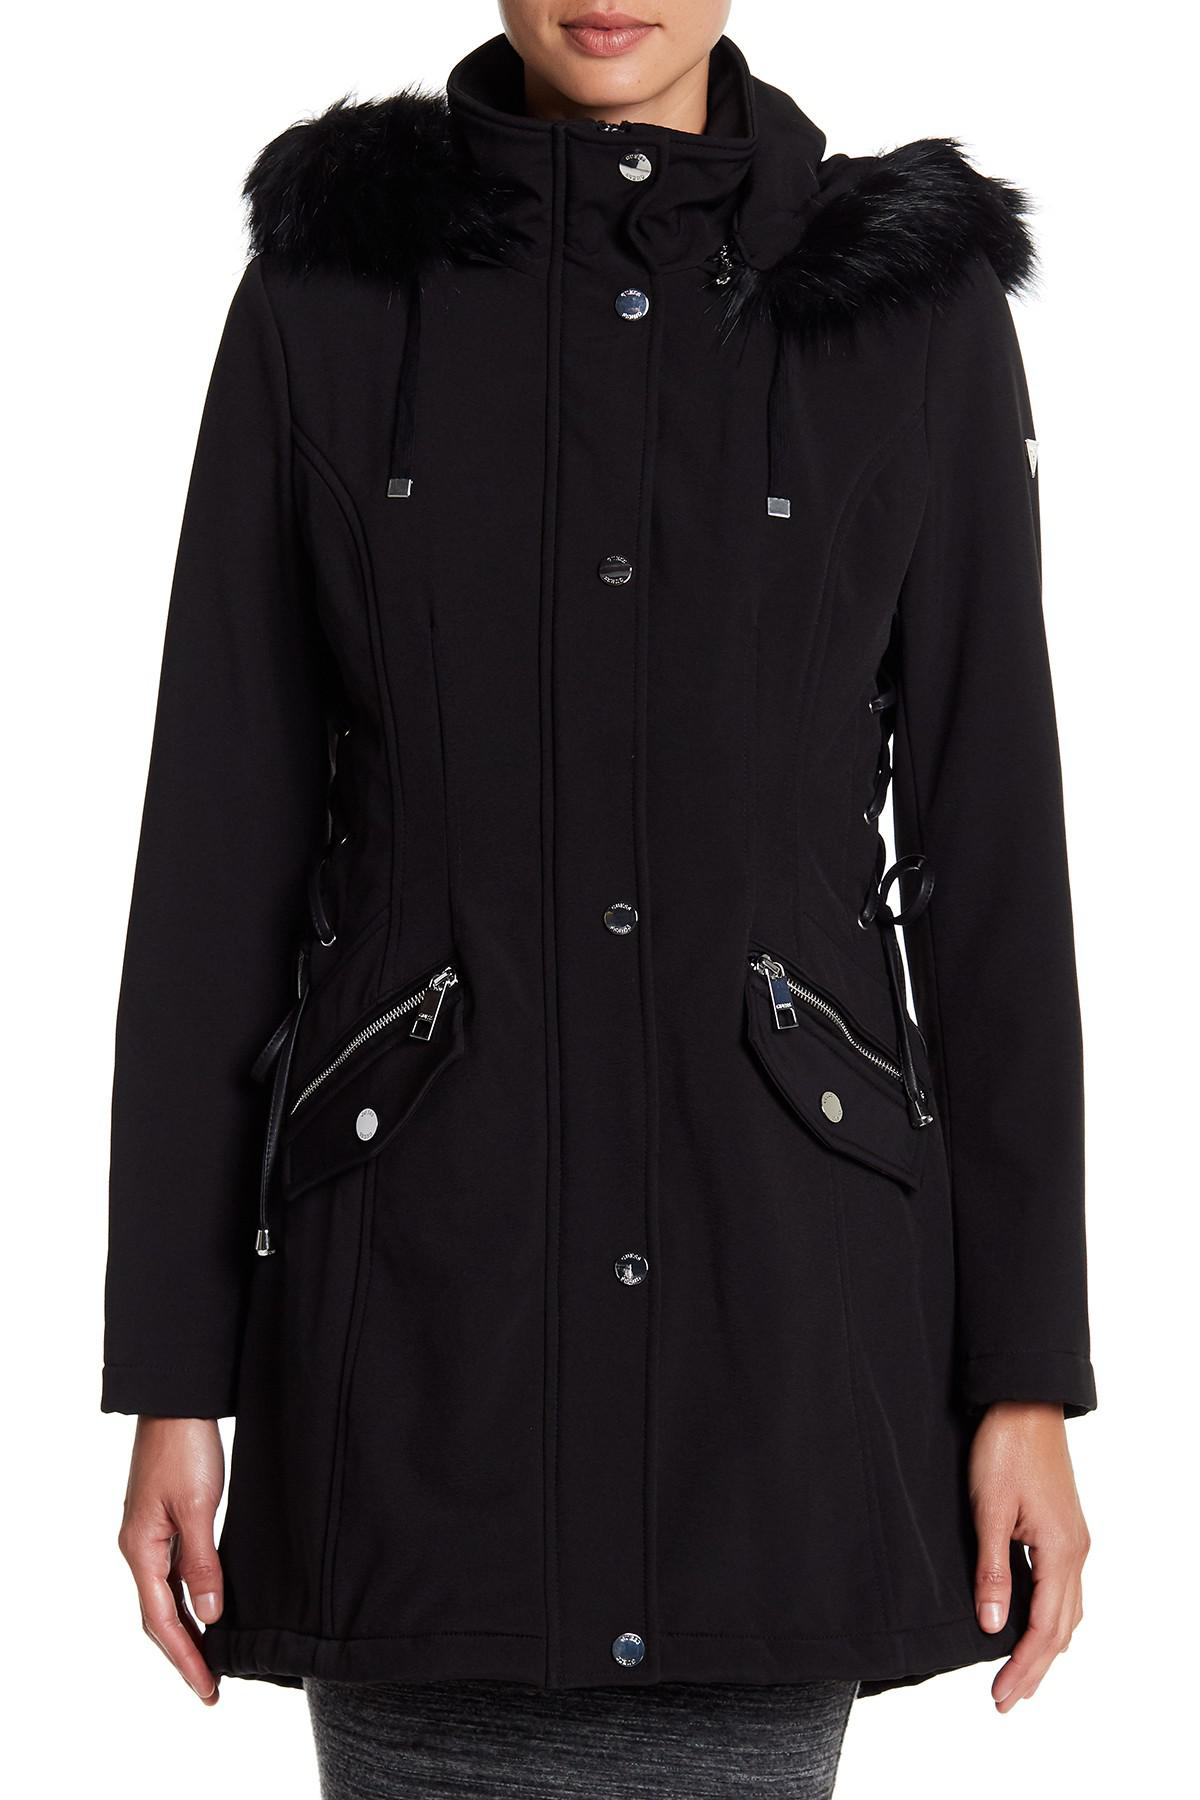 Guess Side Lace Up Faux Fur Trim Hooded Jacket In Black Lyst